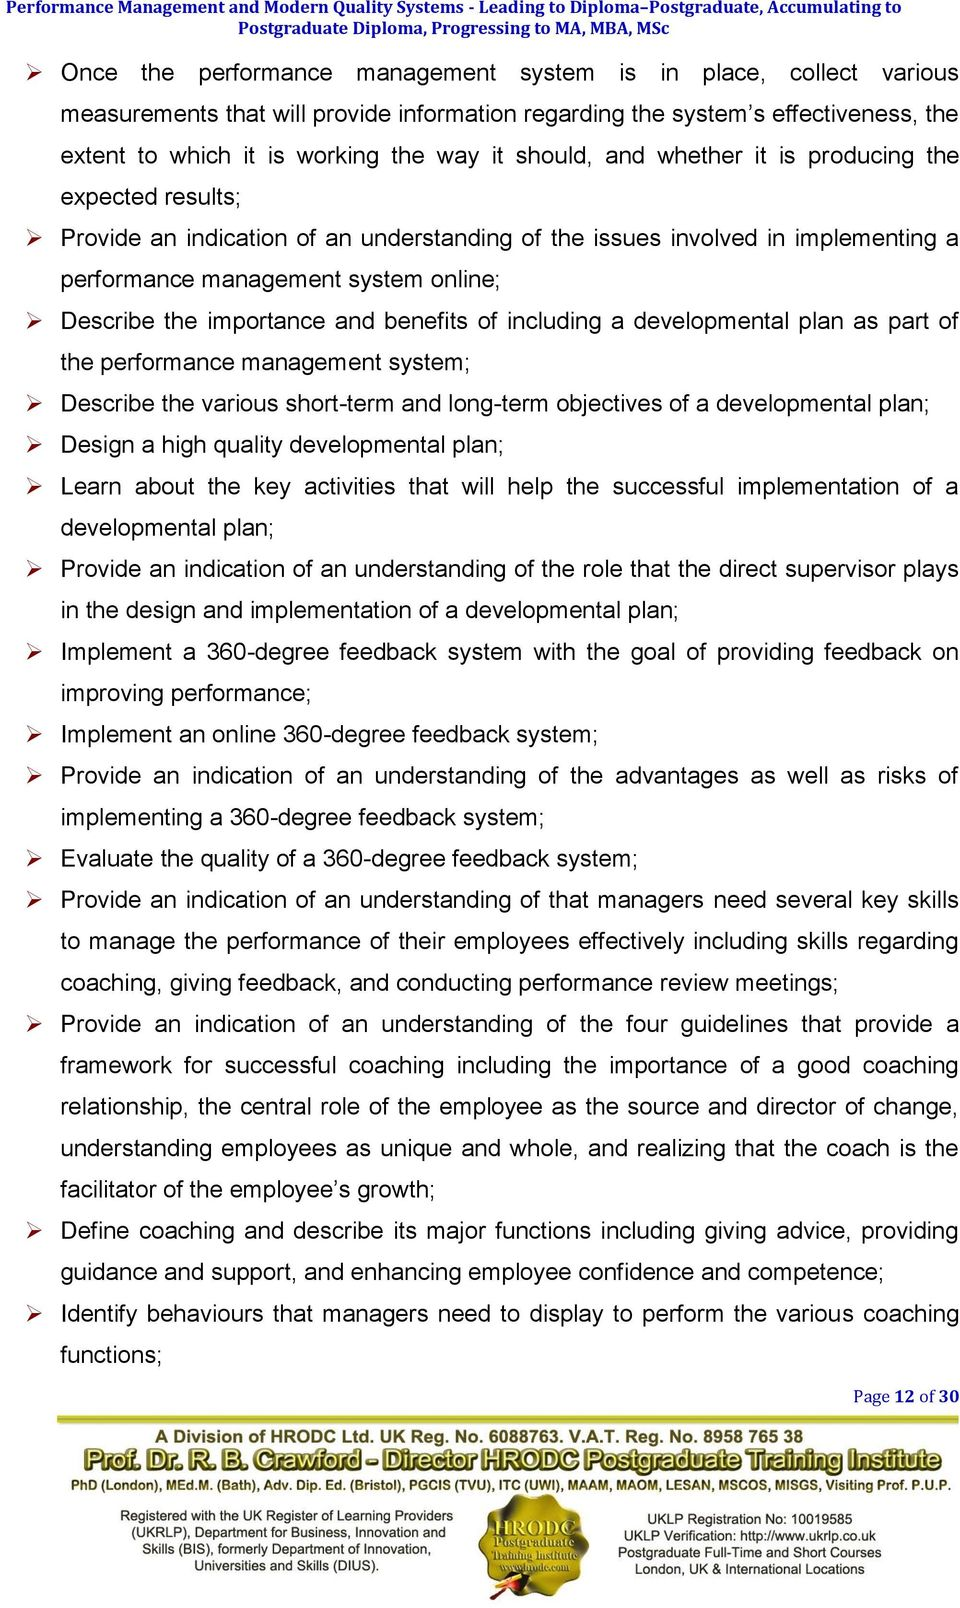 importance and benefits of including a developmental plan as part of the performance management system; Describe the various short-term and long-term objectives of a developmental plan; Design a high